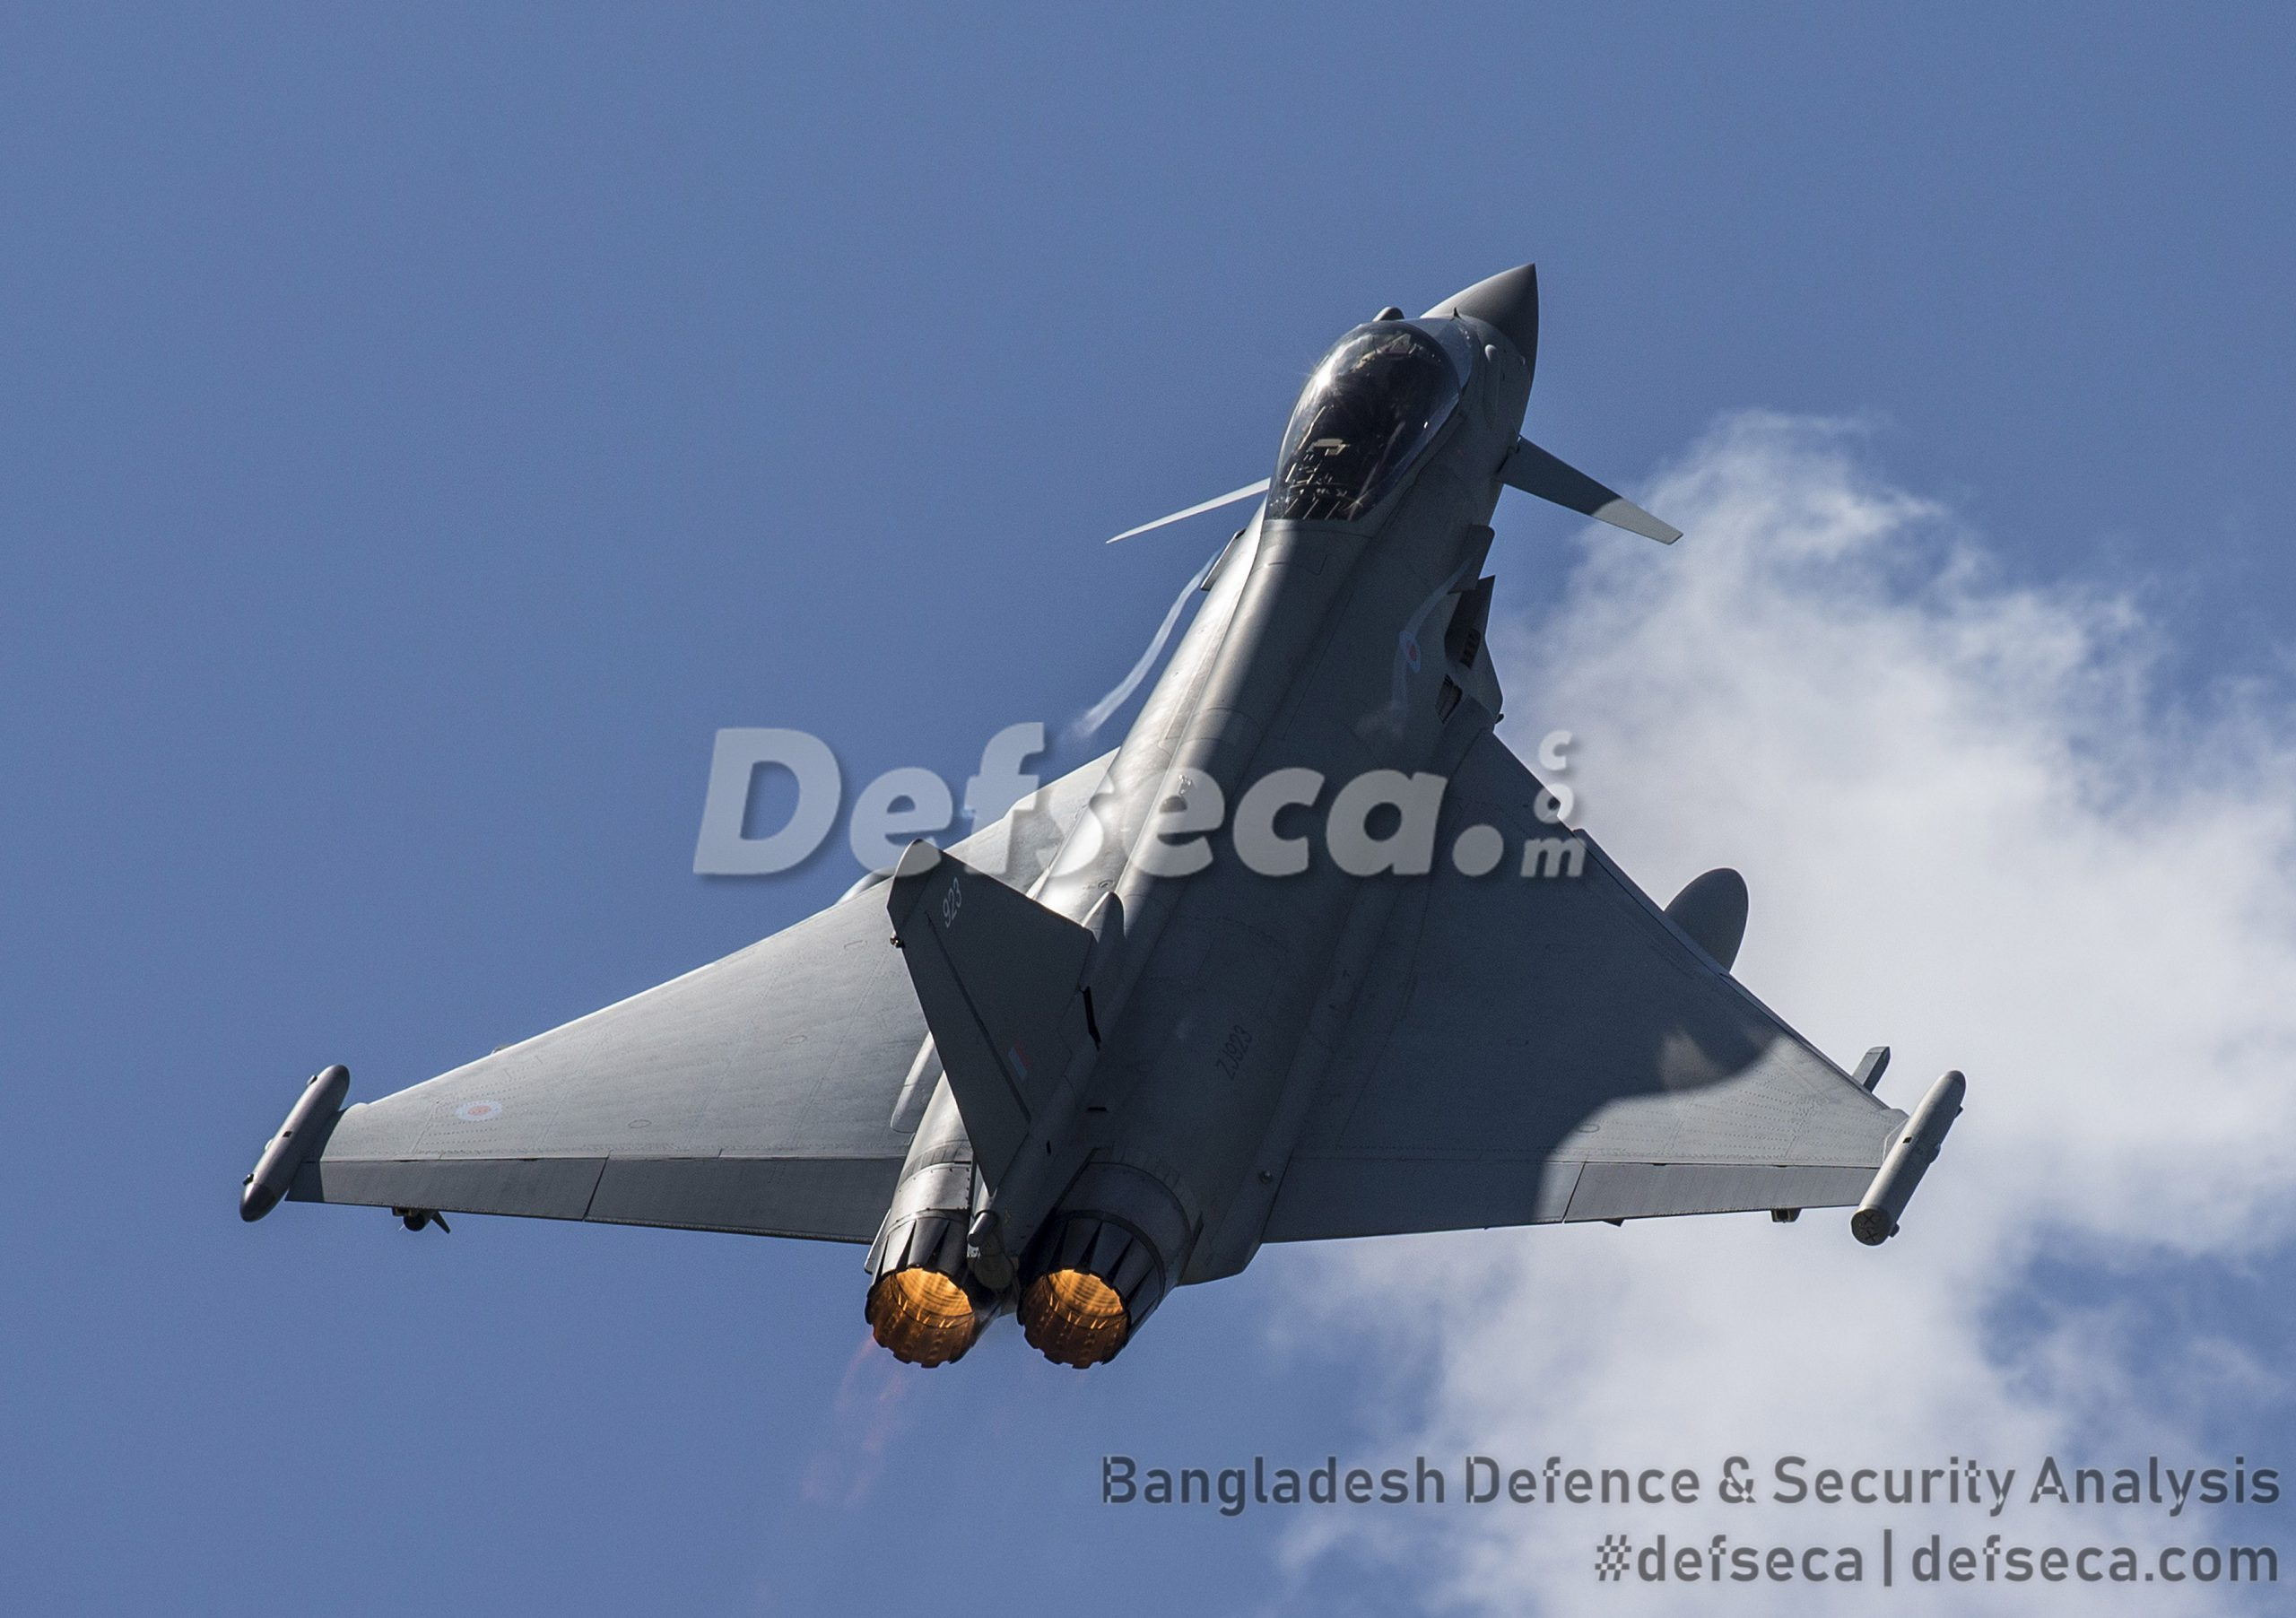 Eurofighter Typhoon high calibre fighters to defend Bangladesh